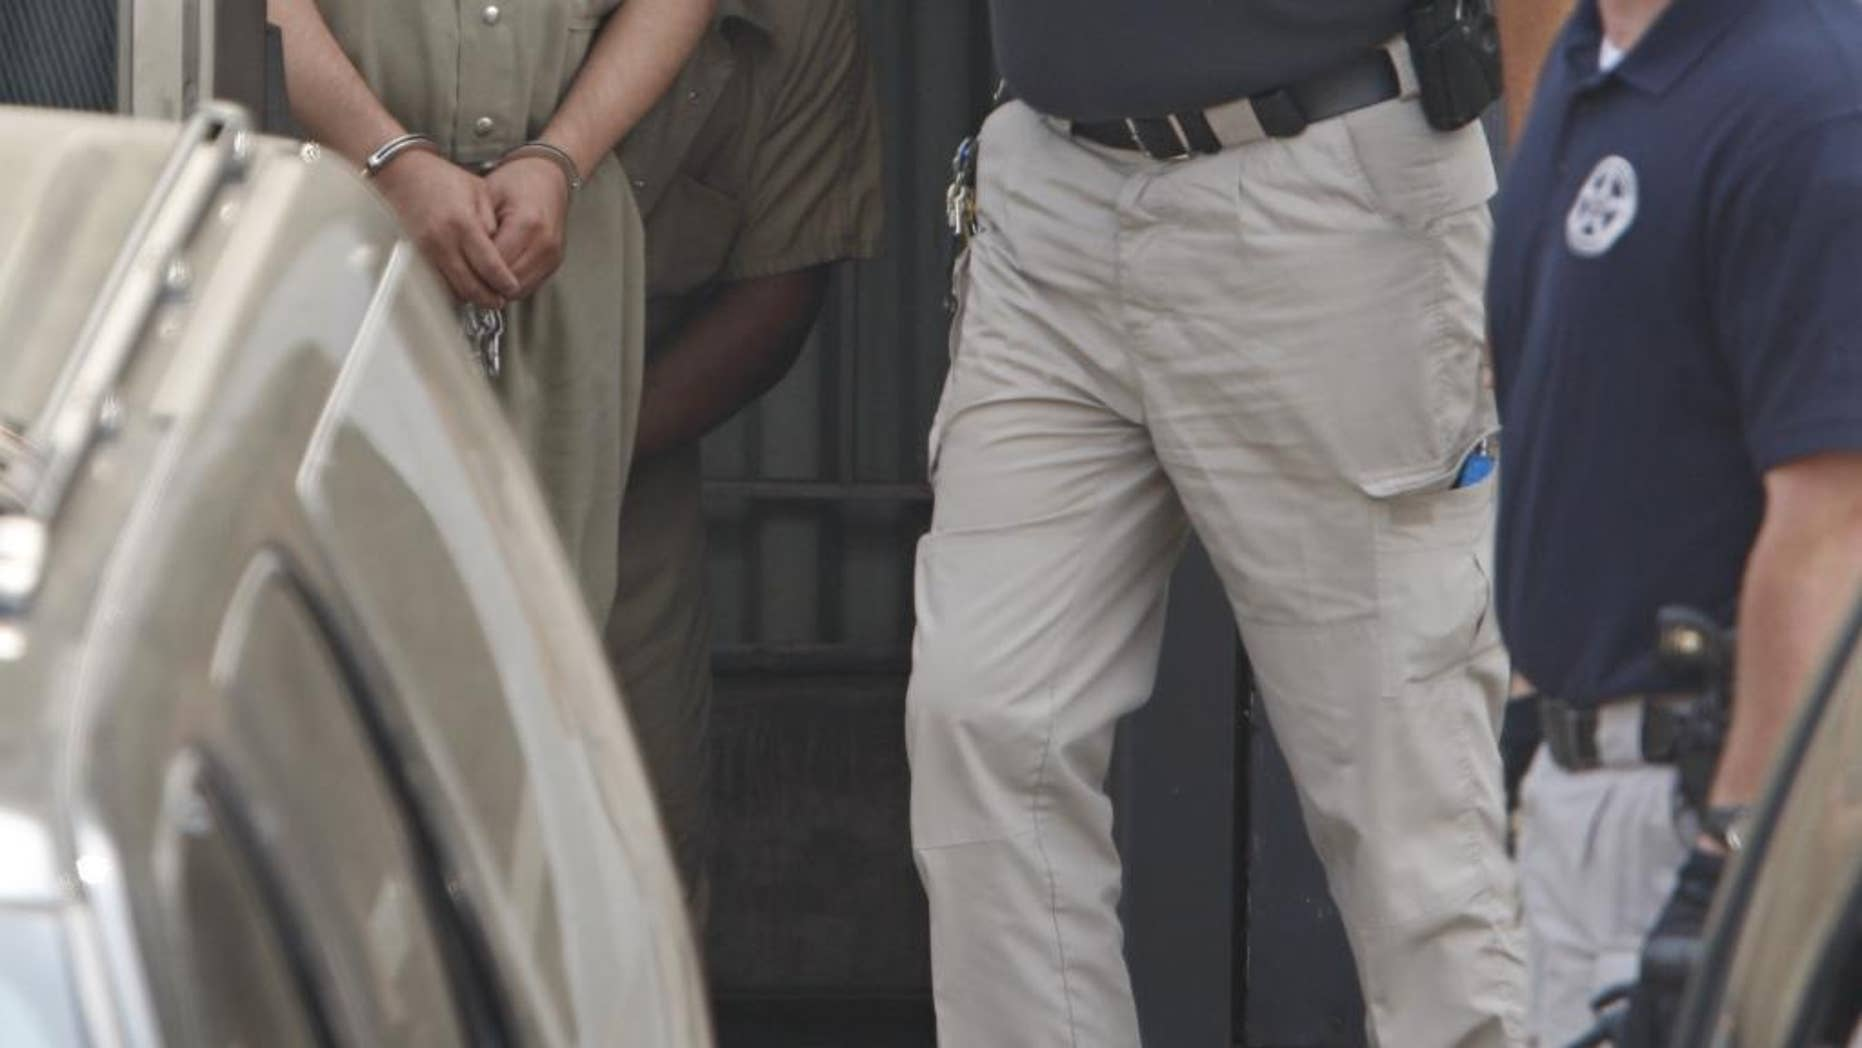 """US Marshall's lead Mufid A. Elfgeeh, 30, a naturalized U.S. citizen from Yemen, out of Federal Court following a hearing Monday, June 1, 2014 in Rochester. The Rochester man was indicted Tuesday Sept. 16, 2014 on charges that he tried to provide material support to the Islamic State by helping three men who said they would travel to Syria to """"engage in violent jihad"""" alongside the group's militants, according to the Justice Department.  (AP Photo/Democrat & Chronicle, Shawn Dowd)"""